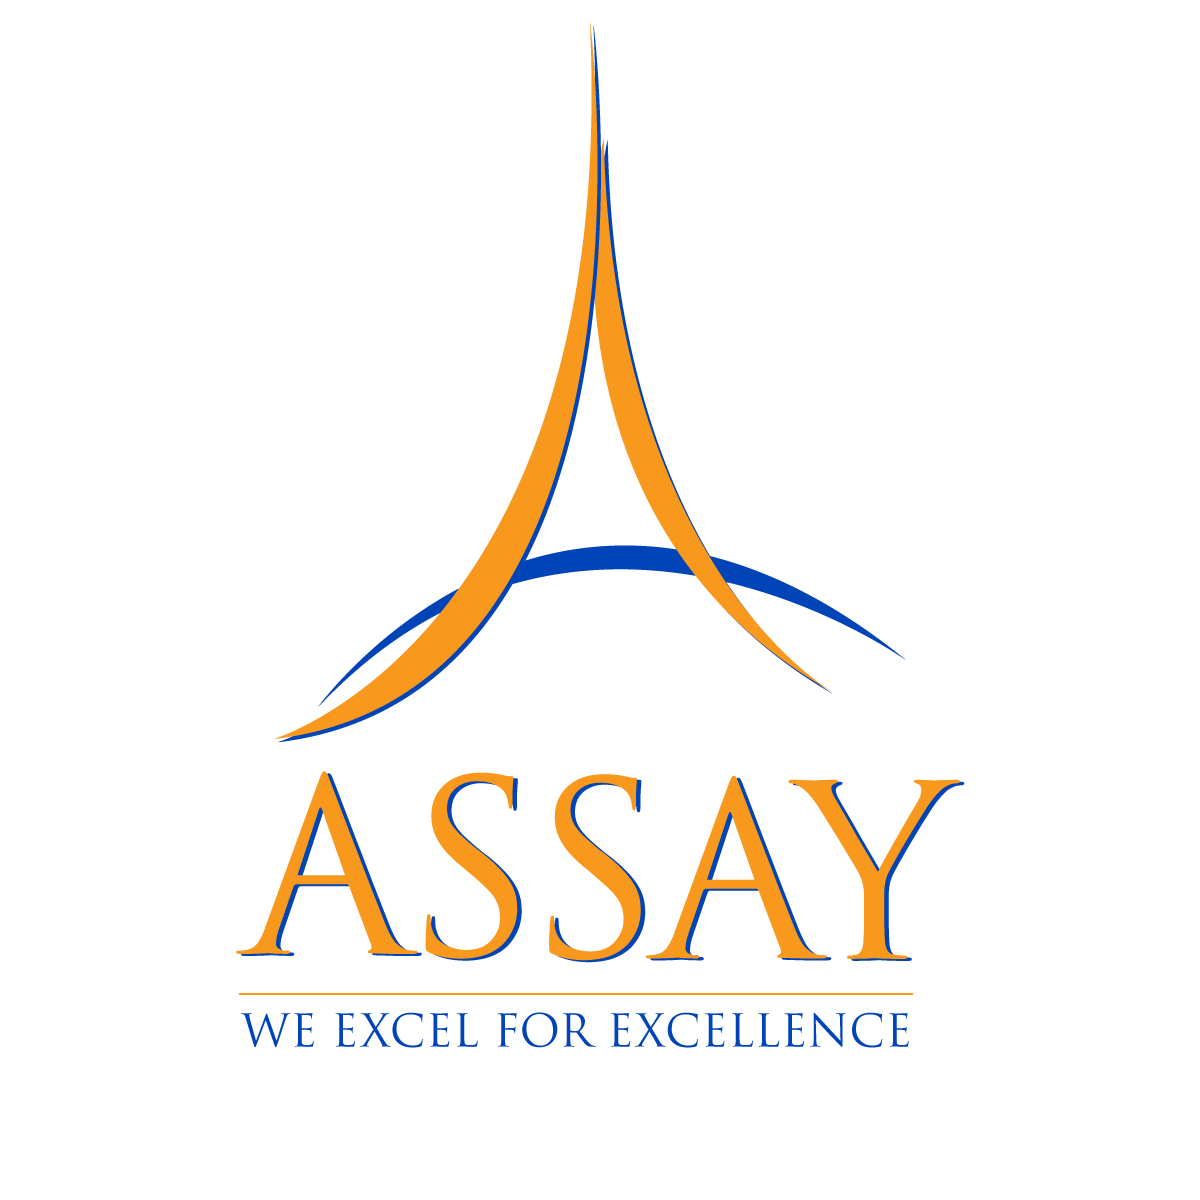 ASSAY Clinical Research Lab / Facility Logo